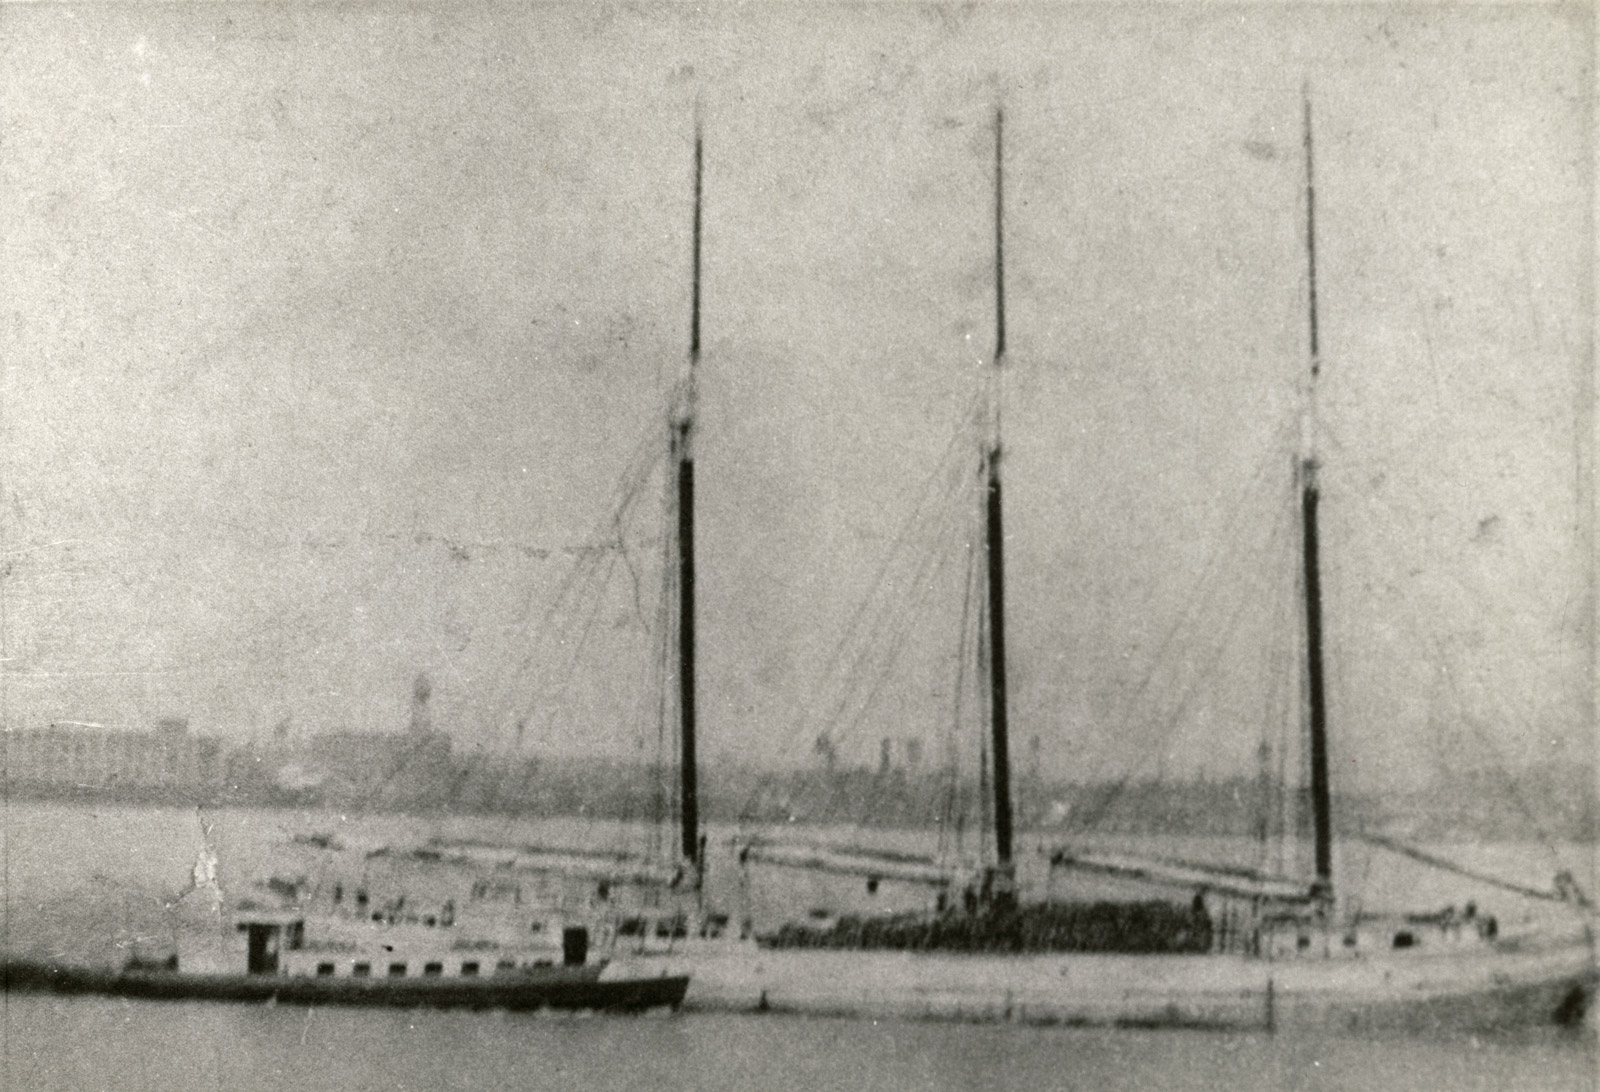 Unknown three masted schooner